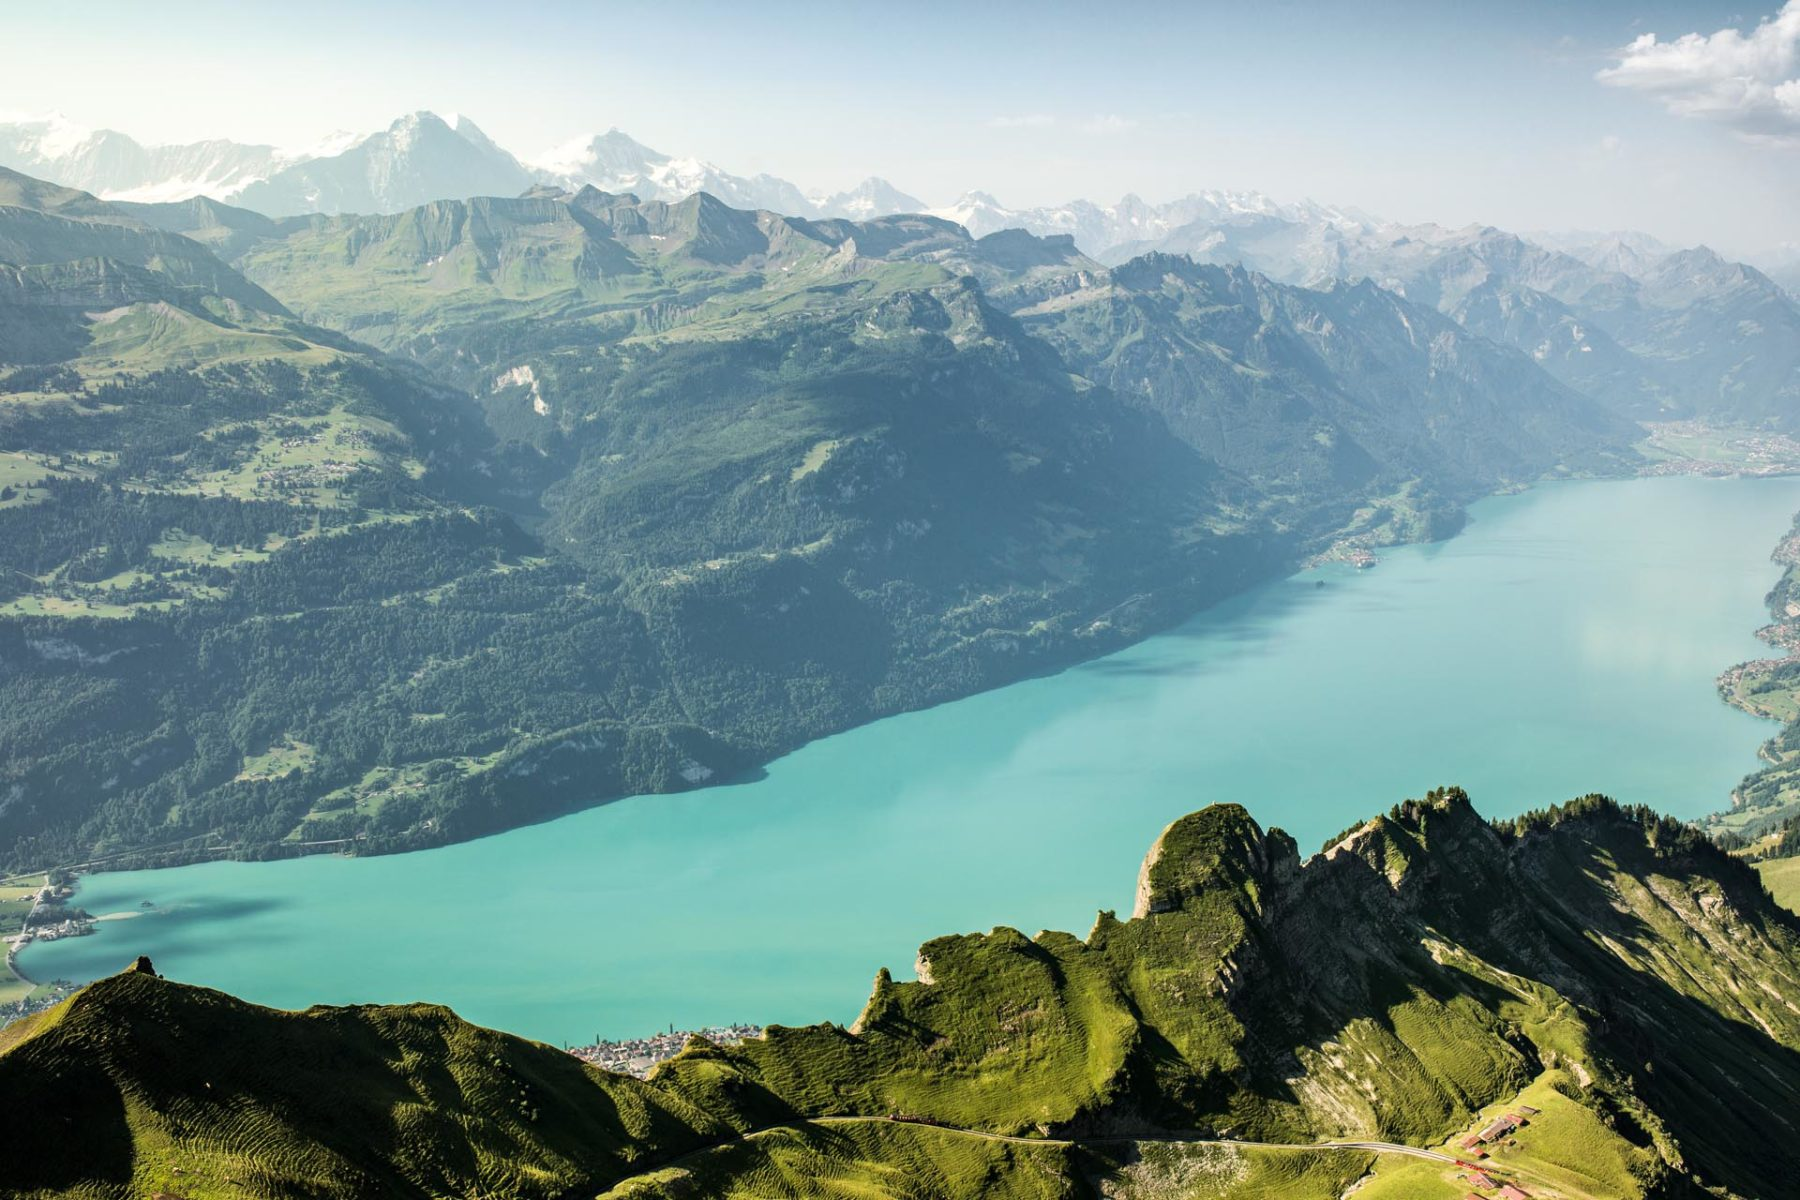 Schweiz. ganz natuerlich. Sicht von Brienzer Rothorn auf den Brienzersee mit dem Dreigestirn im Hintergrund. Switzerland. get natural. View of Brienzer Rothorn on Lake Brienz with the Dreigestirn in the background. Suisse. tout naturellement. Vue de Brienzer Rothorn sur le lac de Brienz avec le Dreigestirn en arriere-plan. Copyright by: Switzerland Tourism - By-Line: swiss-image.ch/Ivo Scholz